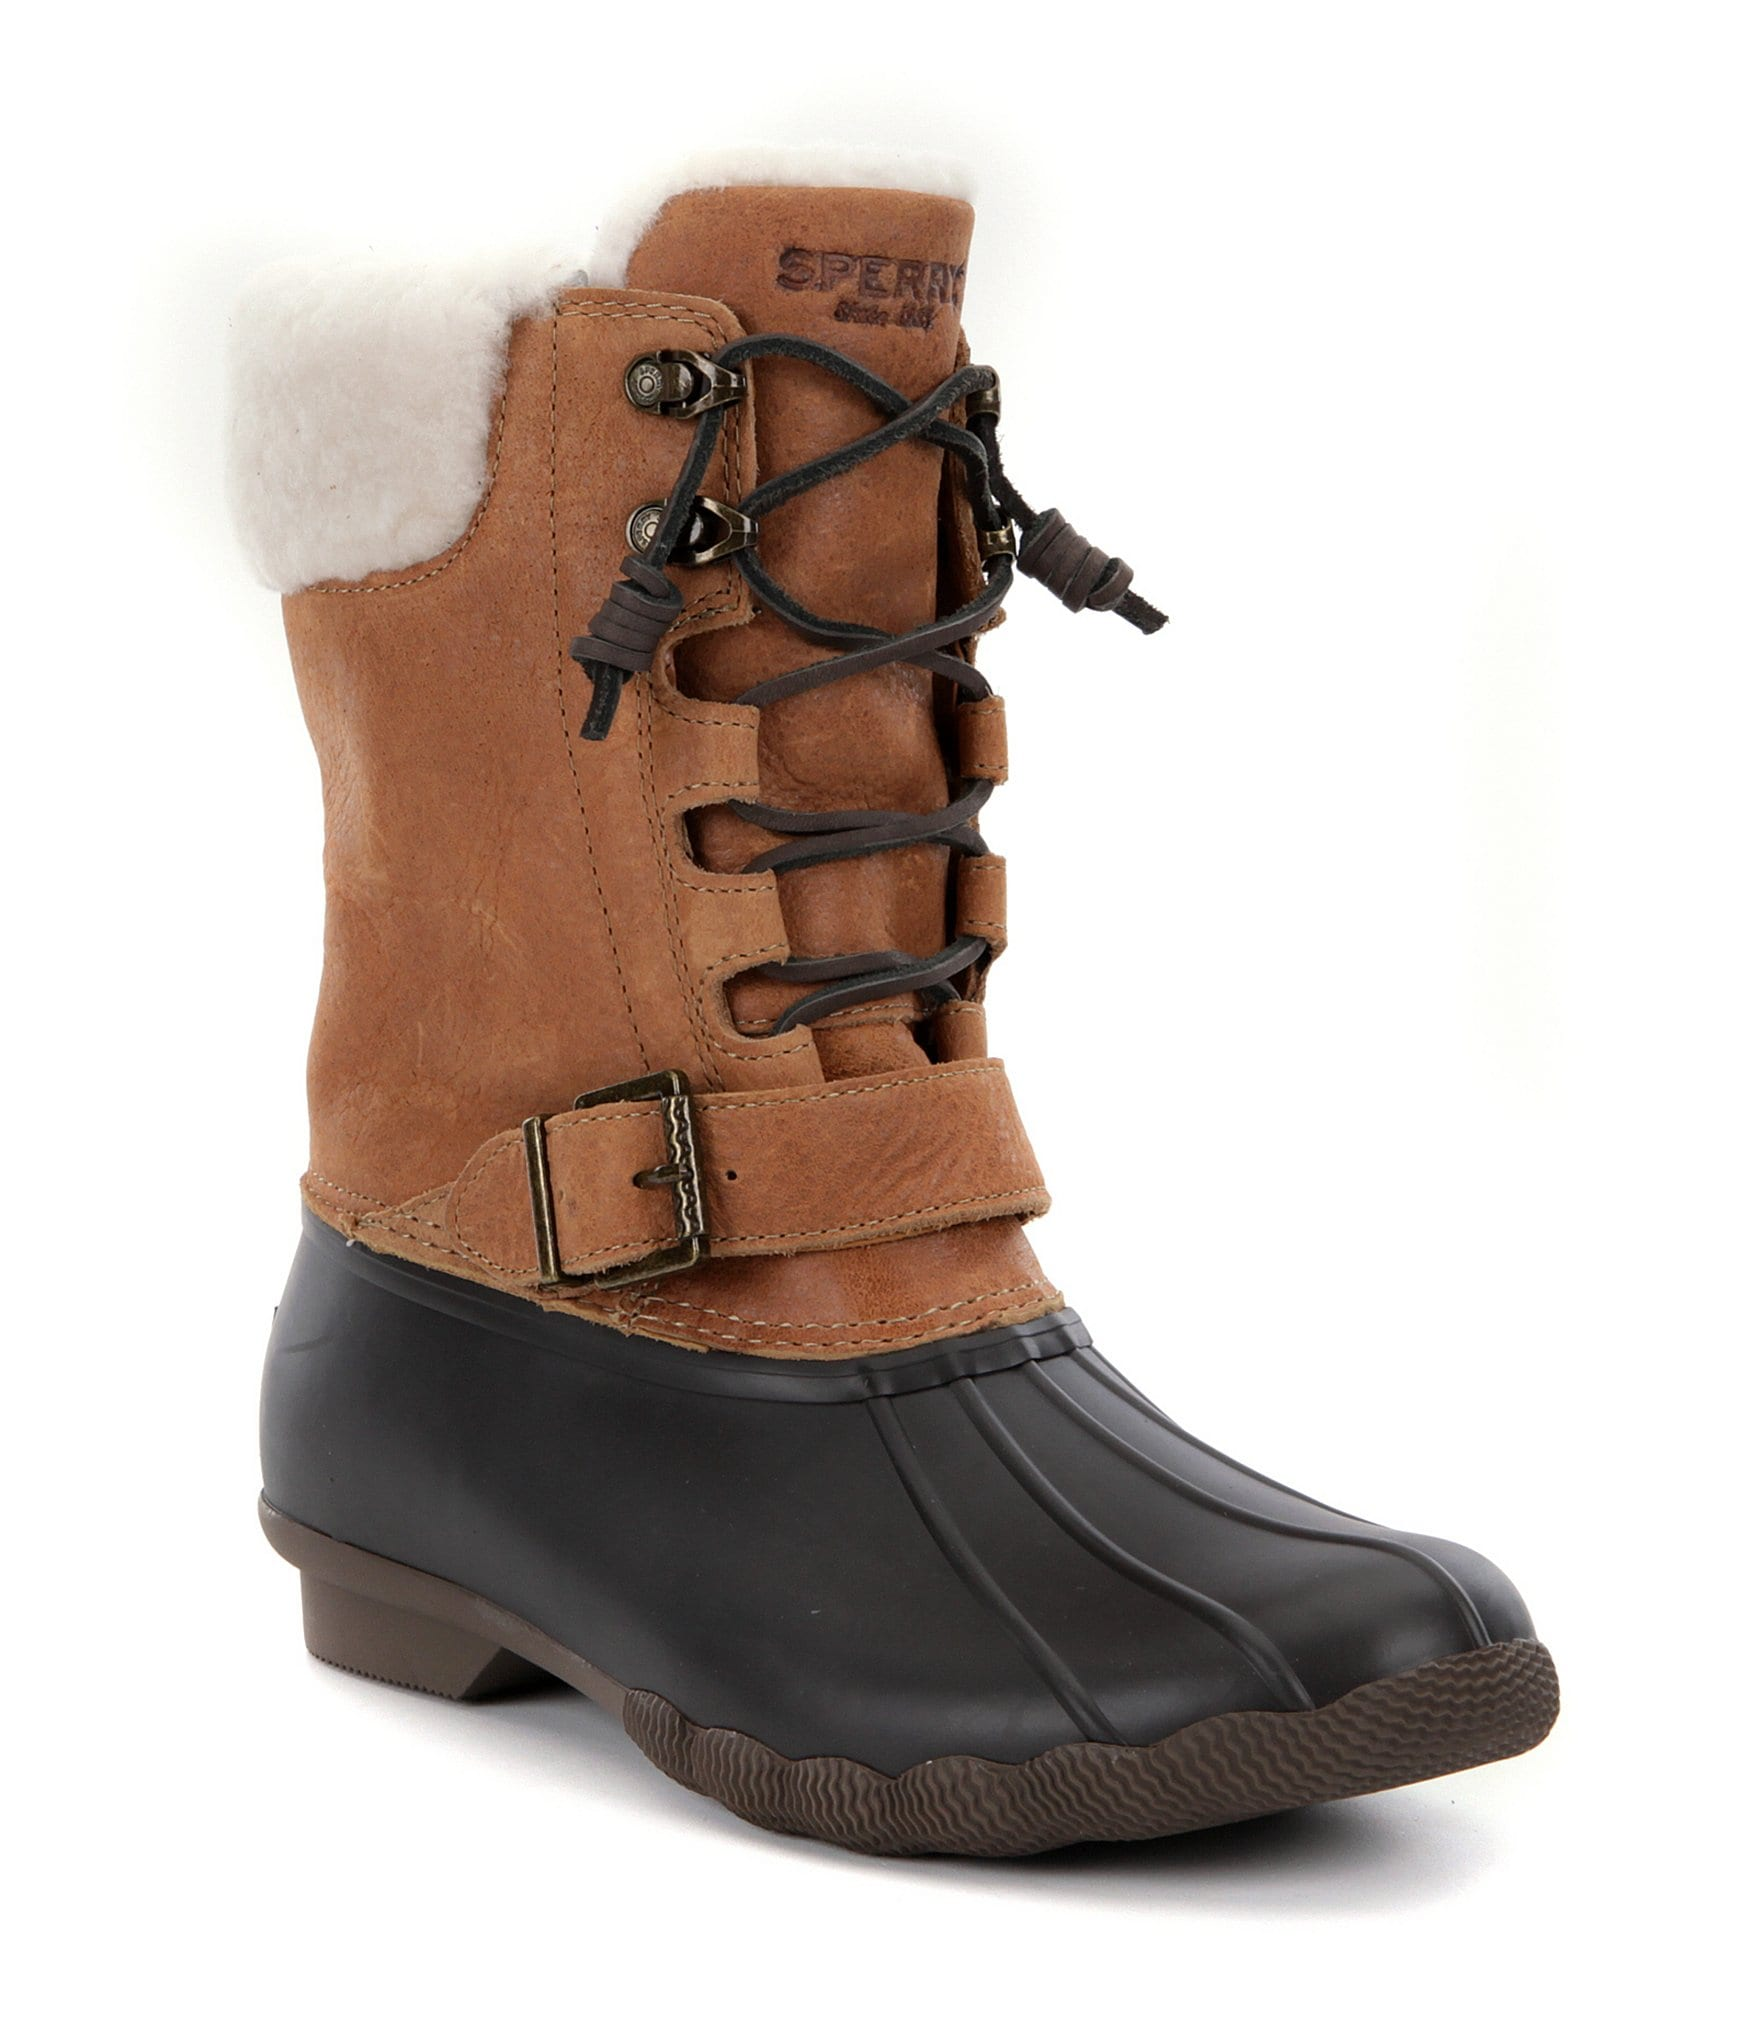 Circle Track Supply >> Sperry Saltwater Misty Thinsulate Waterproof Duck Boots | Dillards